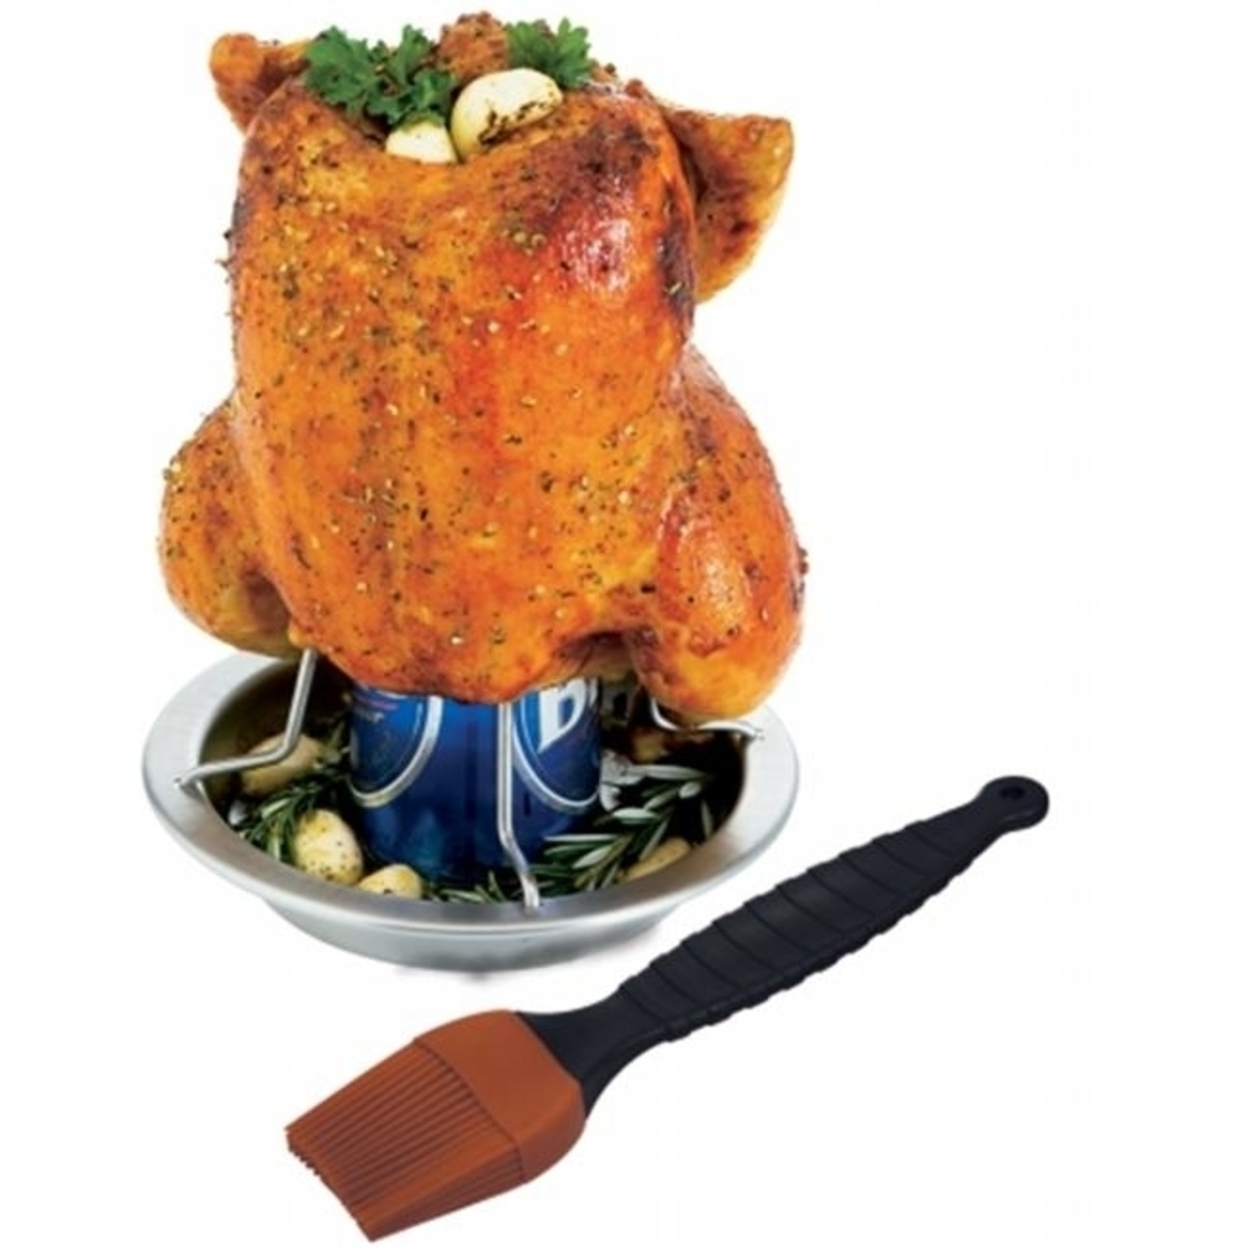 Onward Grill Pro Stainless Steel Chicken Roaster 41333 5a3bf70fe224615edf1427cd